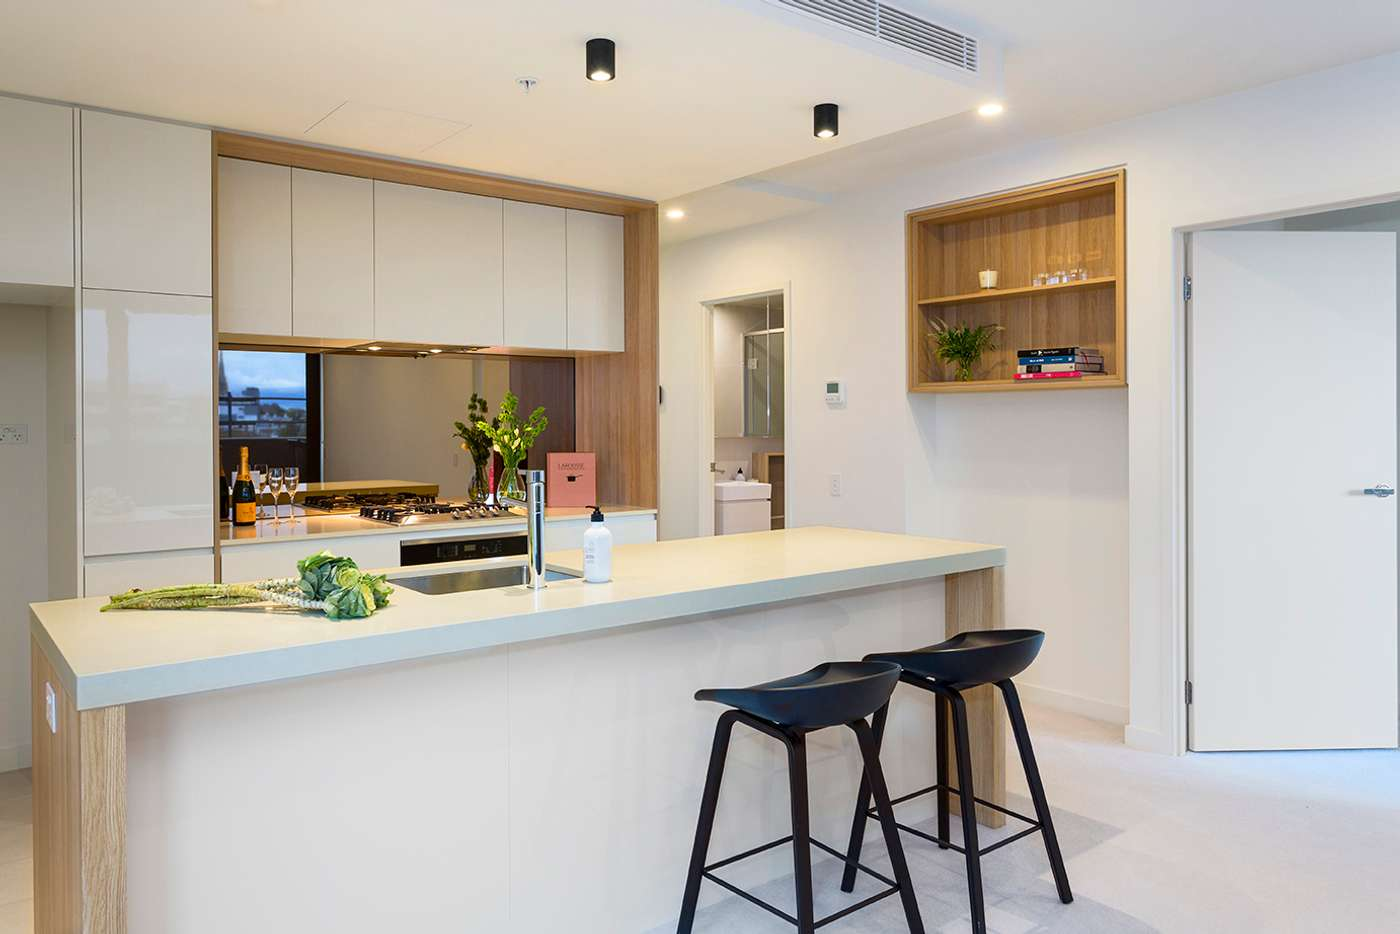 Main view of Homely apartment listing, 1901/3 Yarra Street, South Yarra VIC 3141